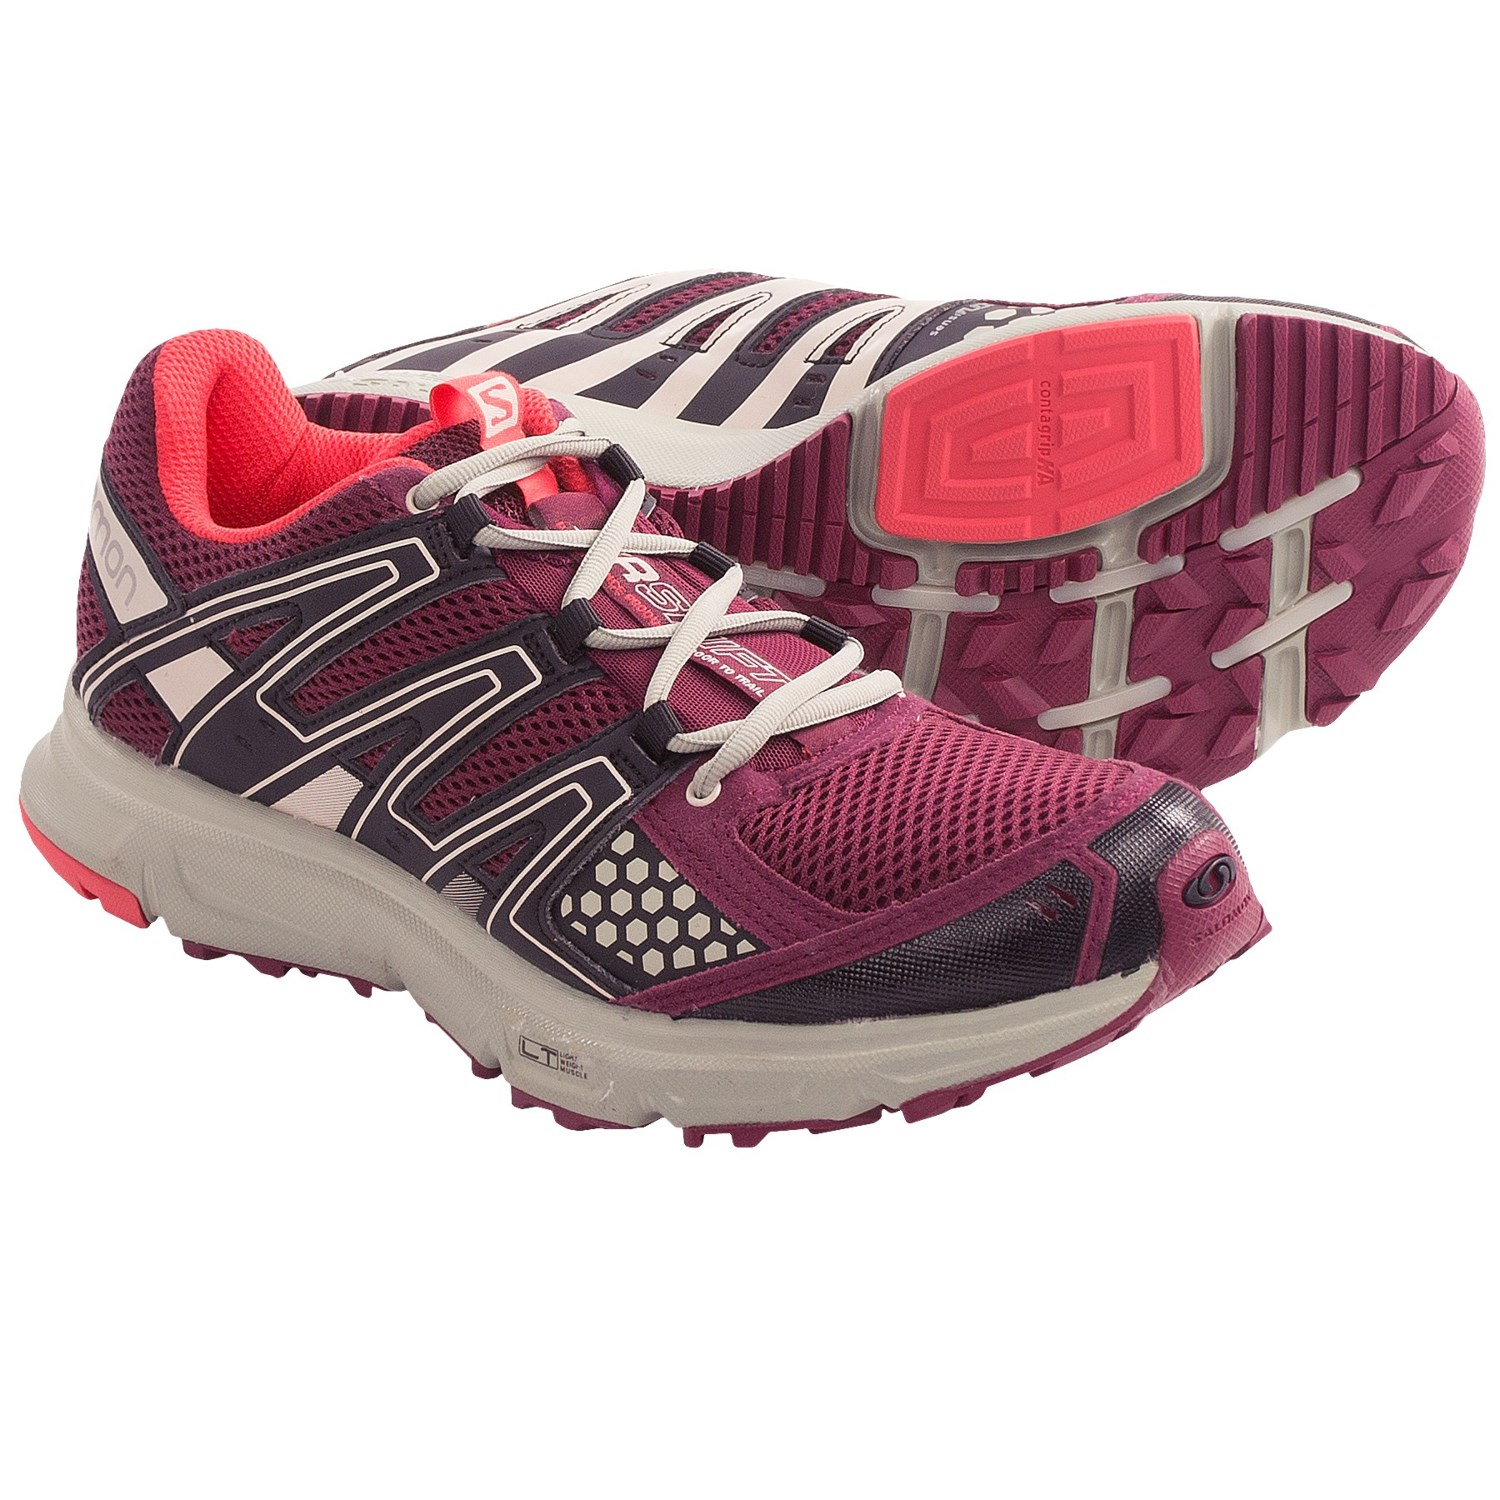 Salomon Xr Shift Trail Running Shoes Review